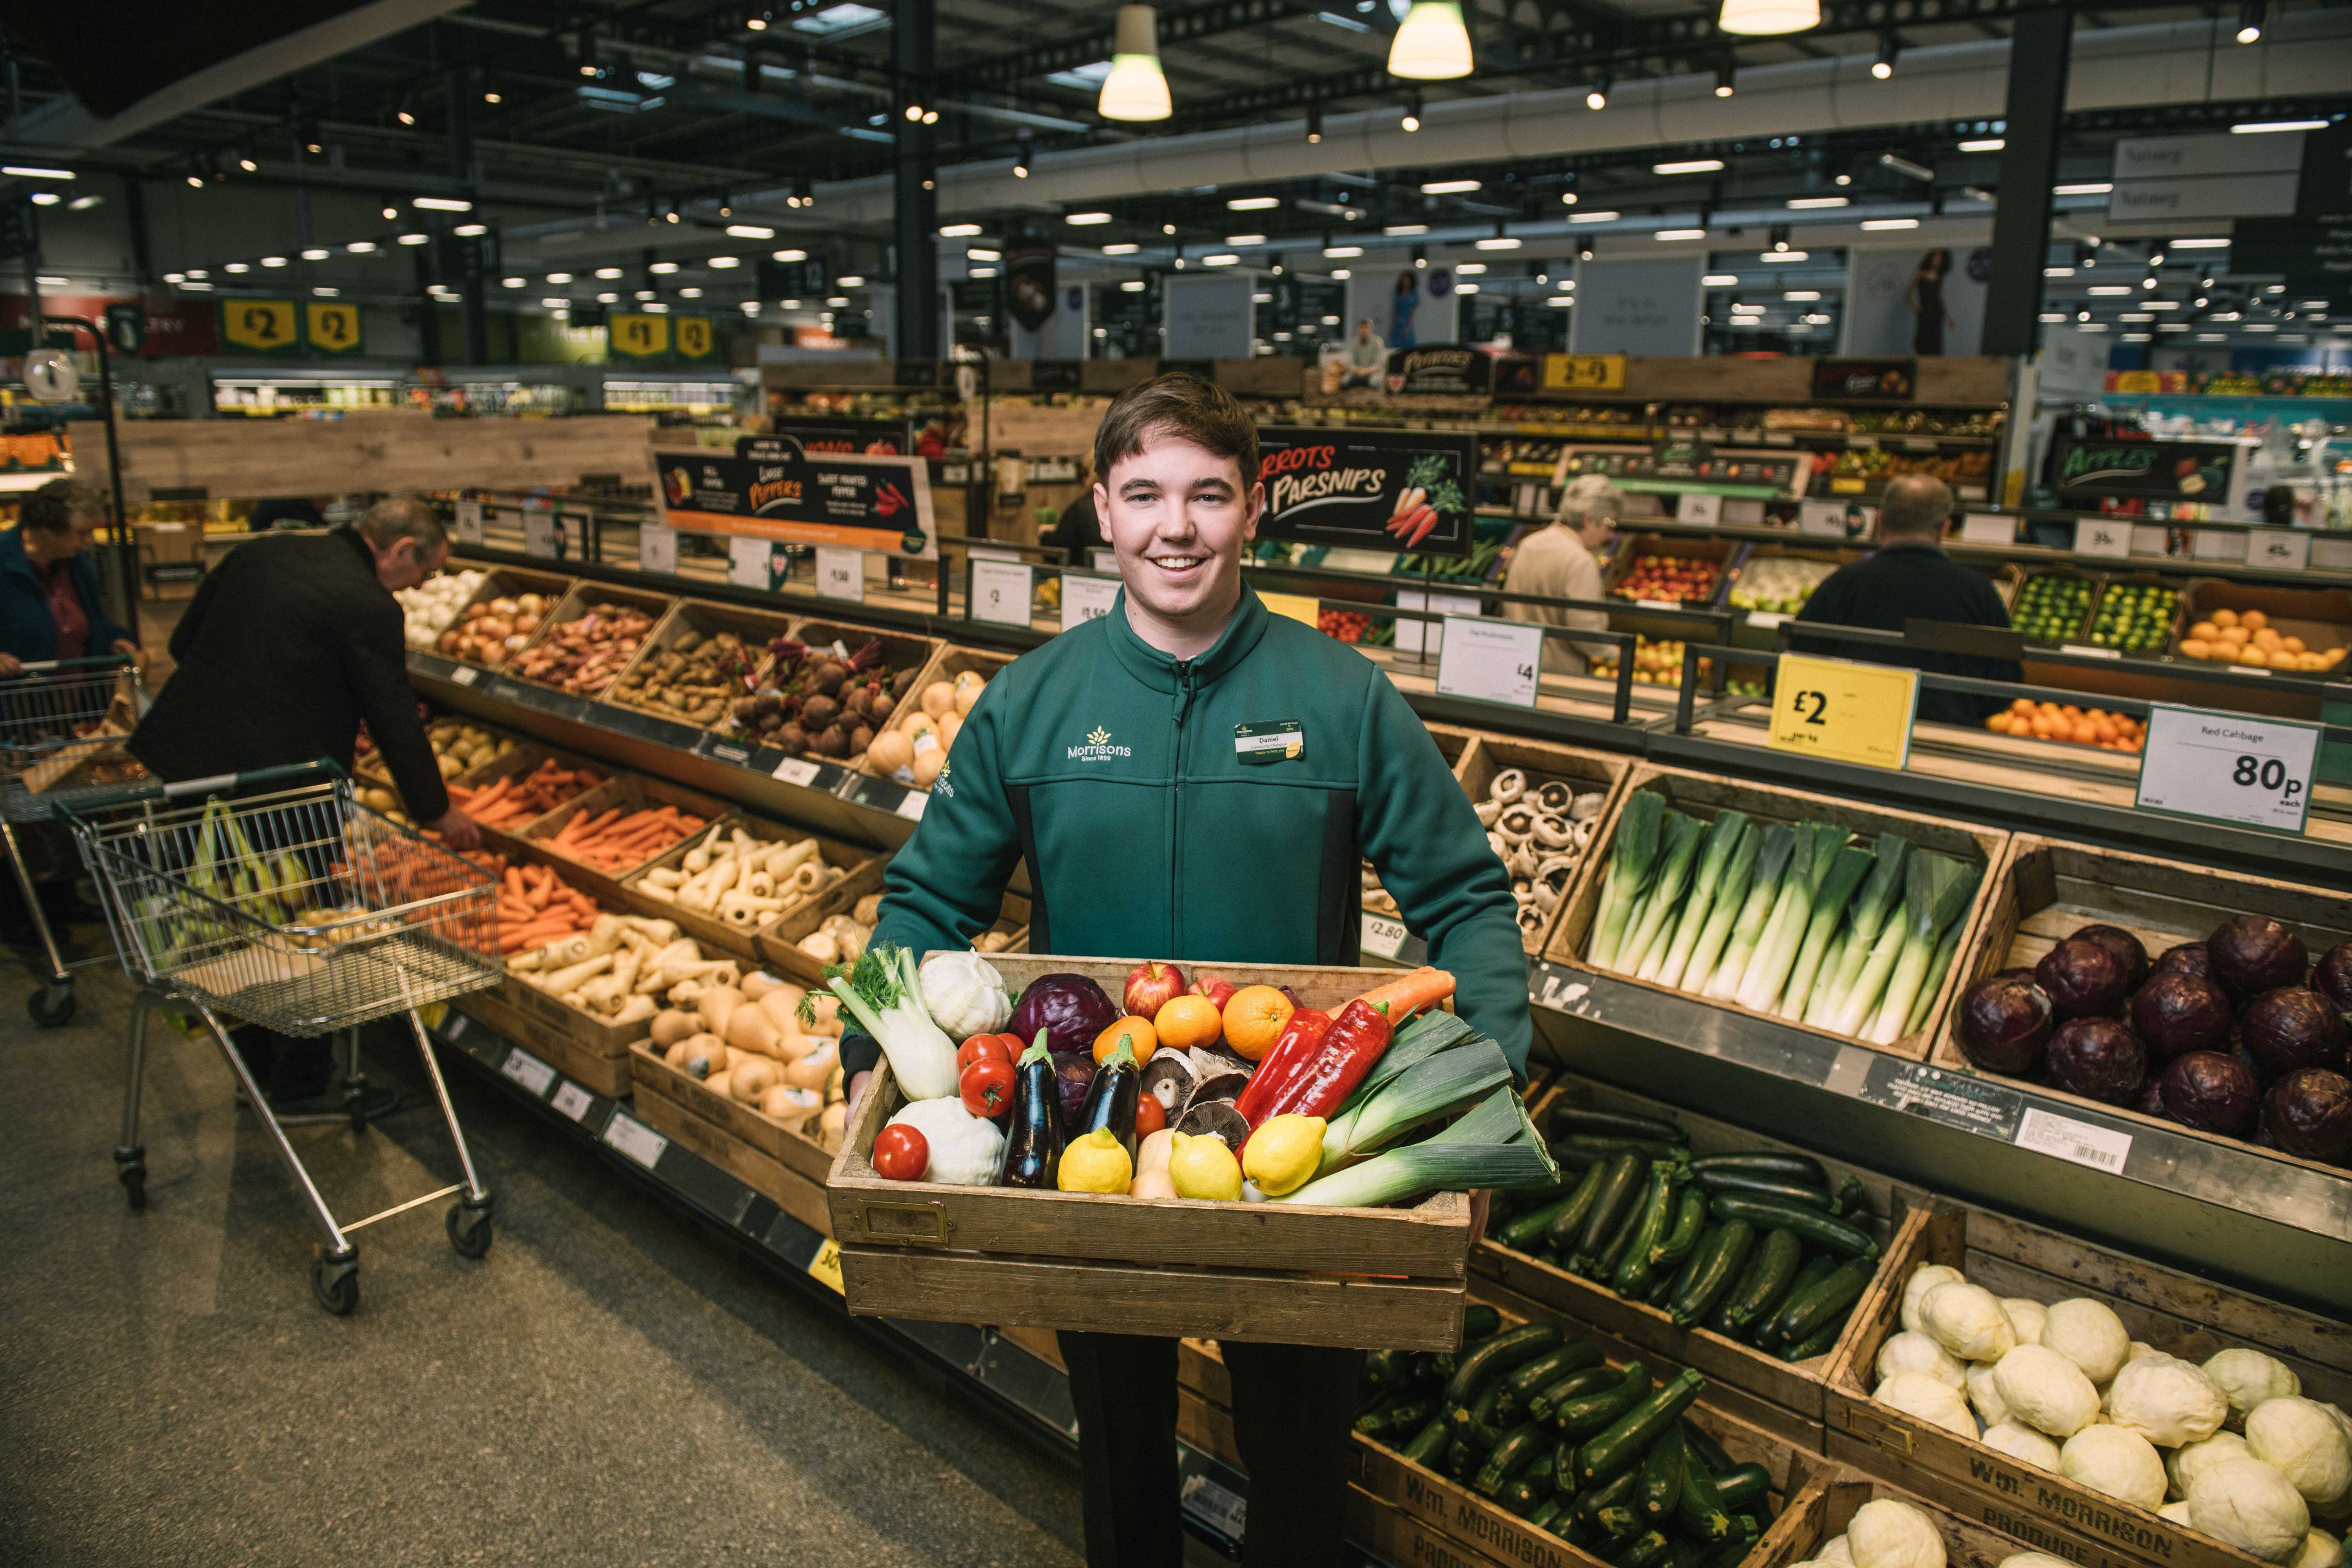 Customers will be able to choose from 127 varieties of fruit and veg - all plastic-free. Credit: Morrisons